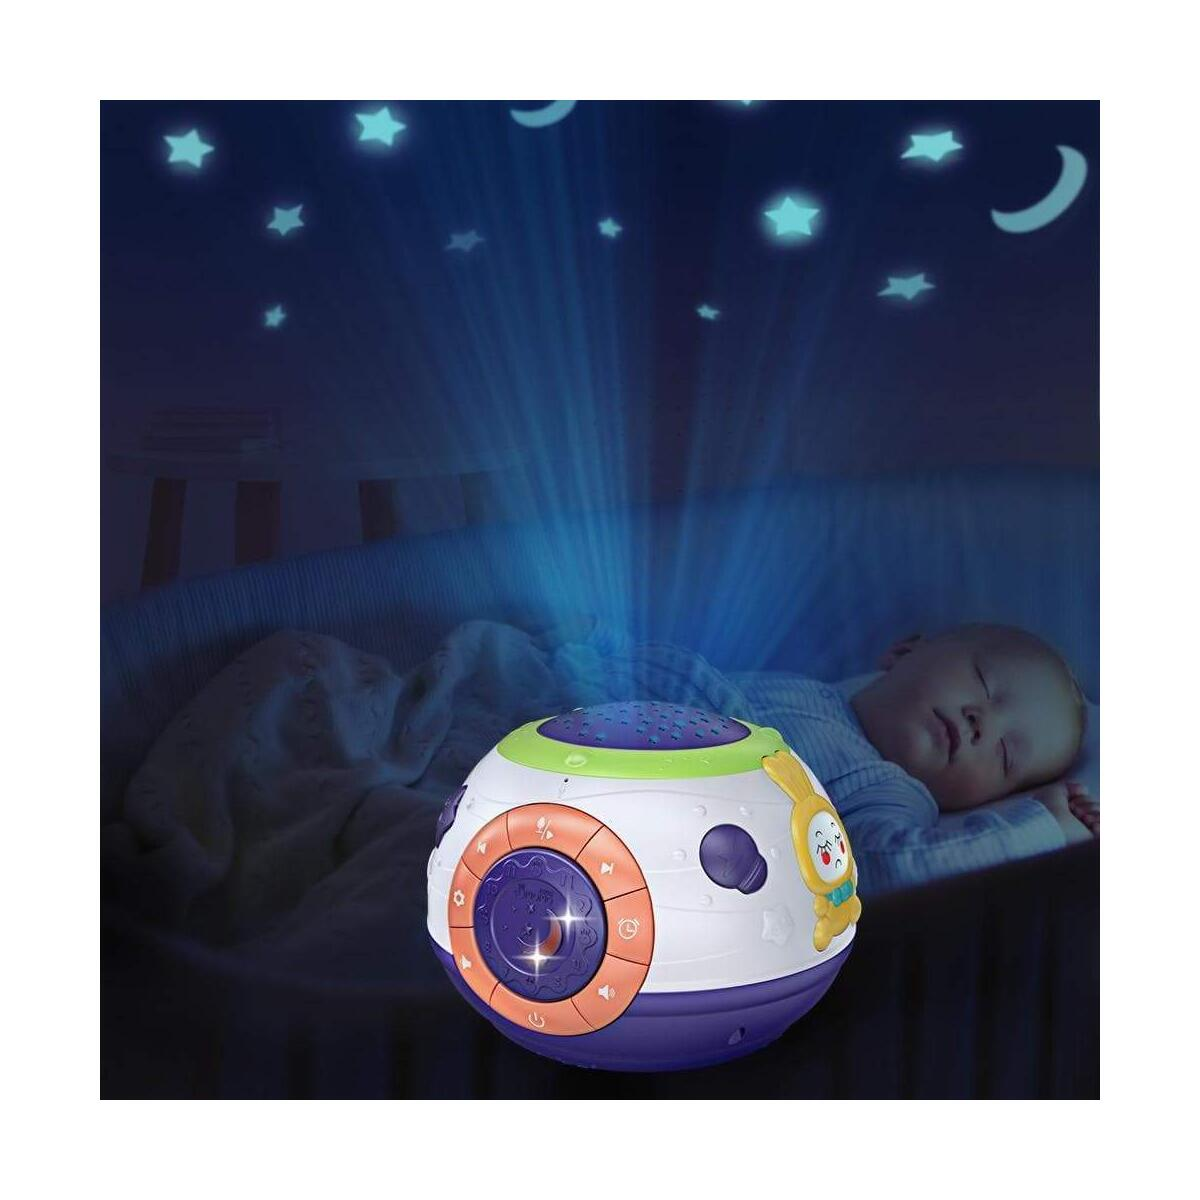 Baby Nursery Night Led Light Stars Projector Colorful Luminous Music Sphere Lamp